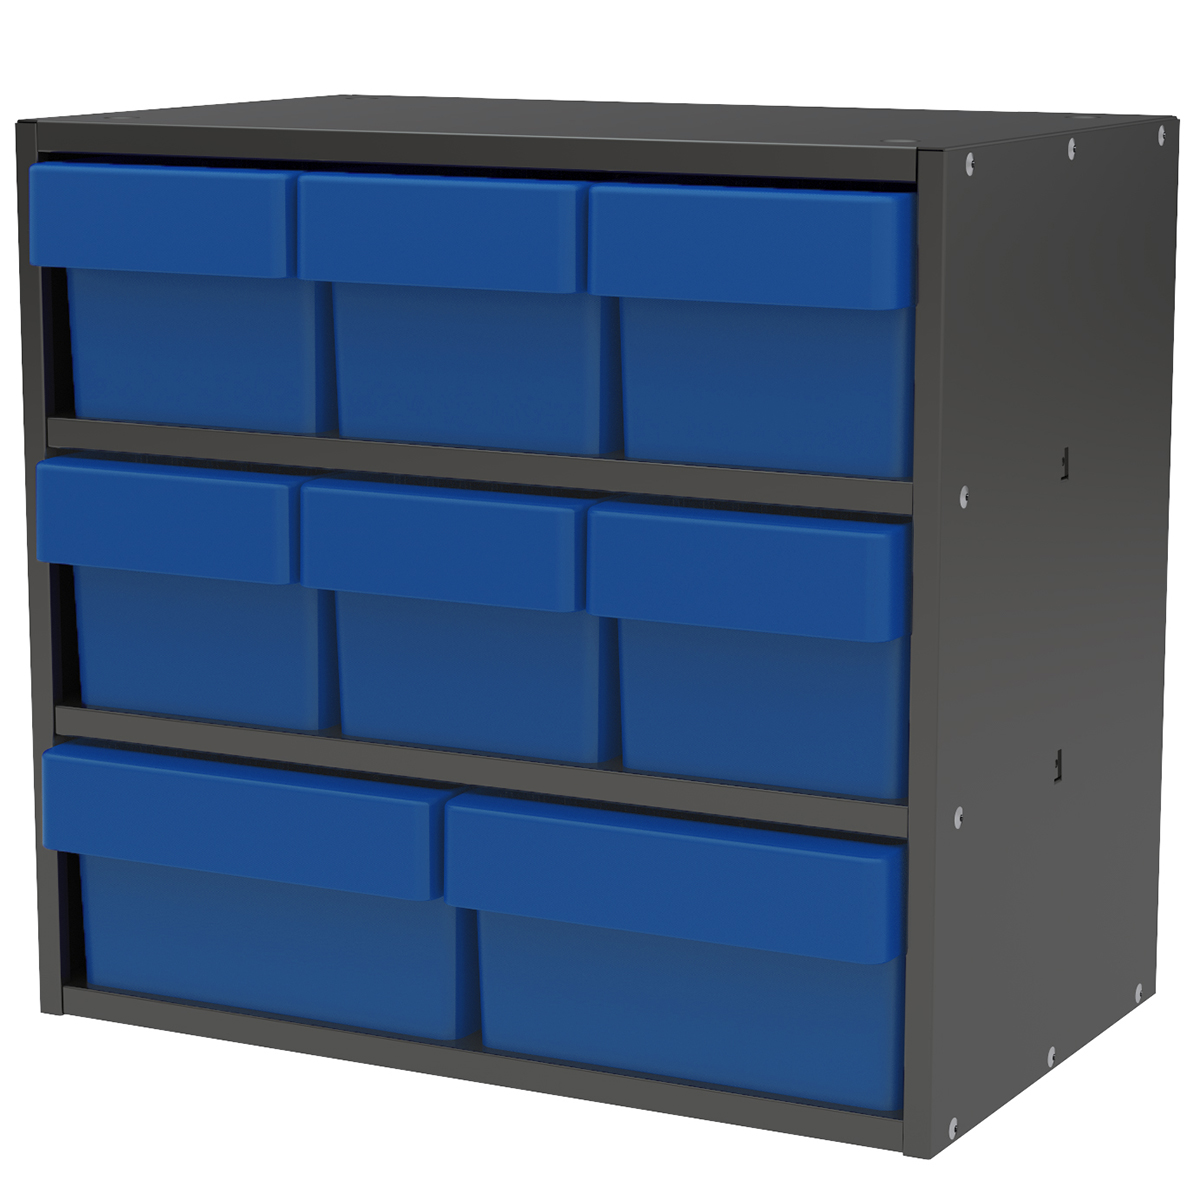 Item DISCONTINUED by Manufacturer.  Modular Cabinet, 18x11x16, 8 Drawers, Gray/Blue (AD1811CASTBLU).  This item sold in carton quantities of 1.